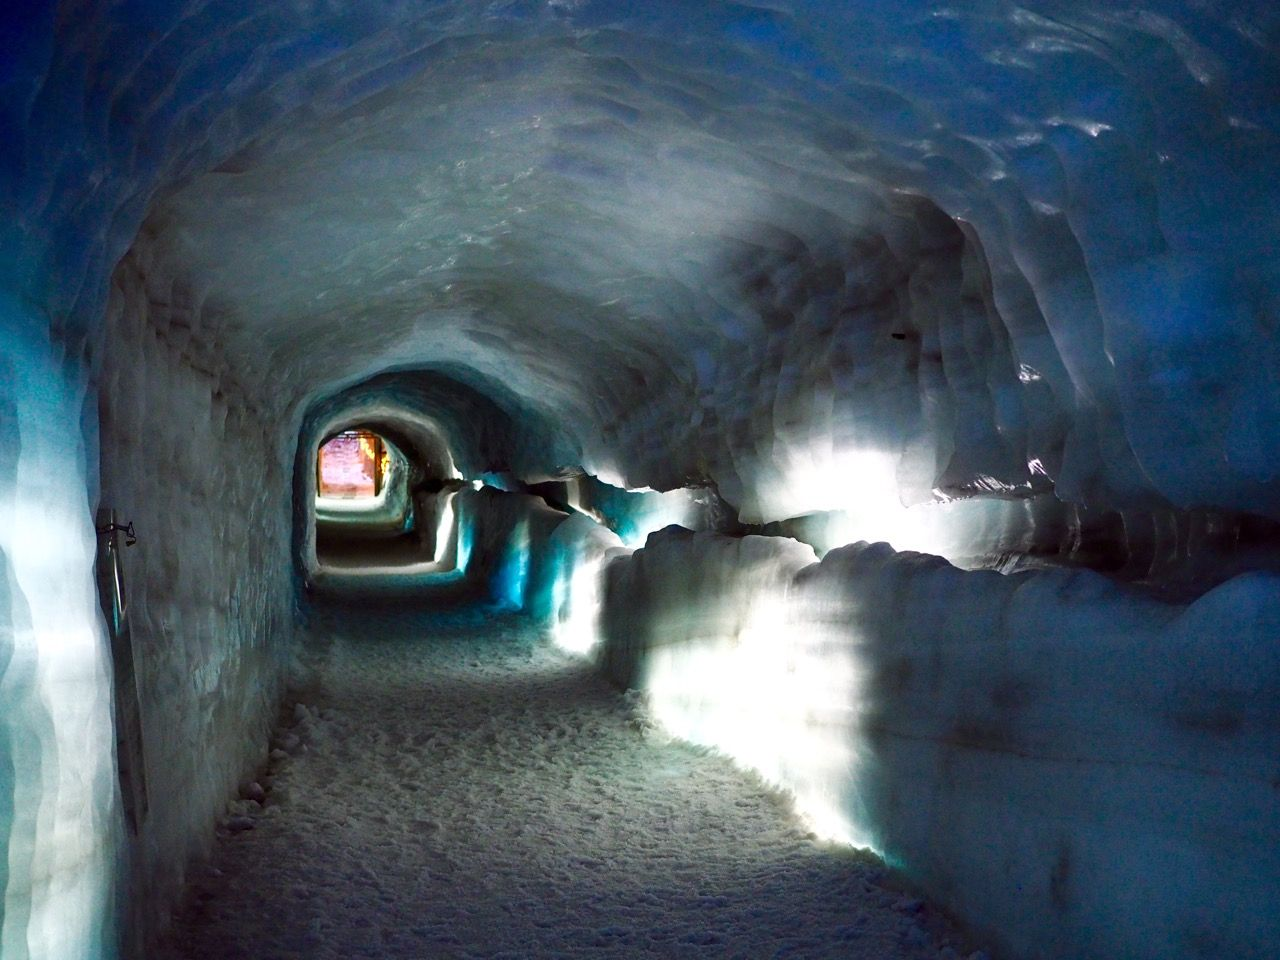 Review and photos of the absolutely stunning visit inside Langjökull, one of the biggest and most impressive glaciers in Iceland.